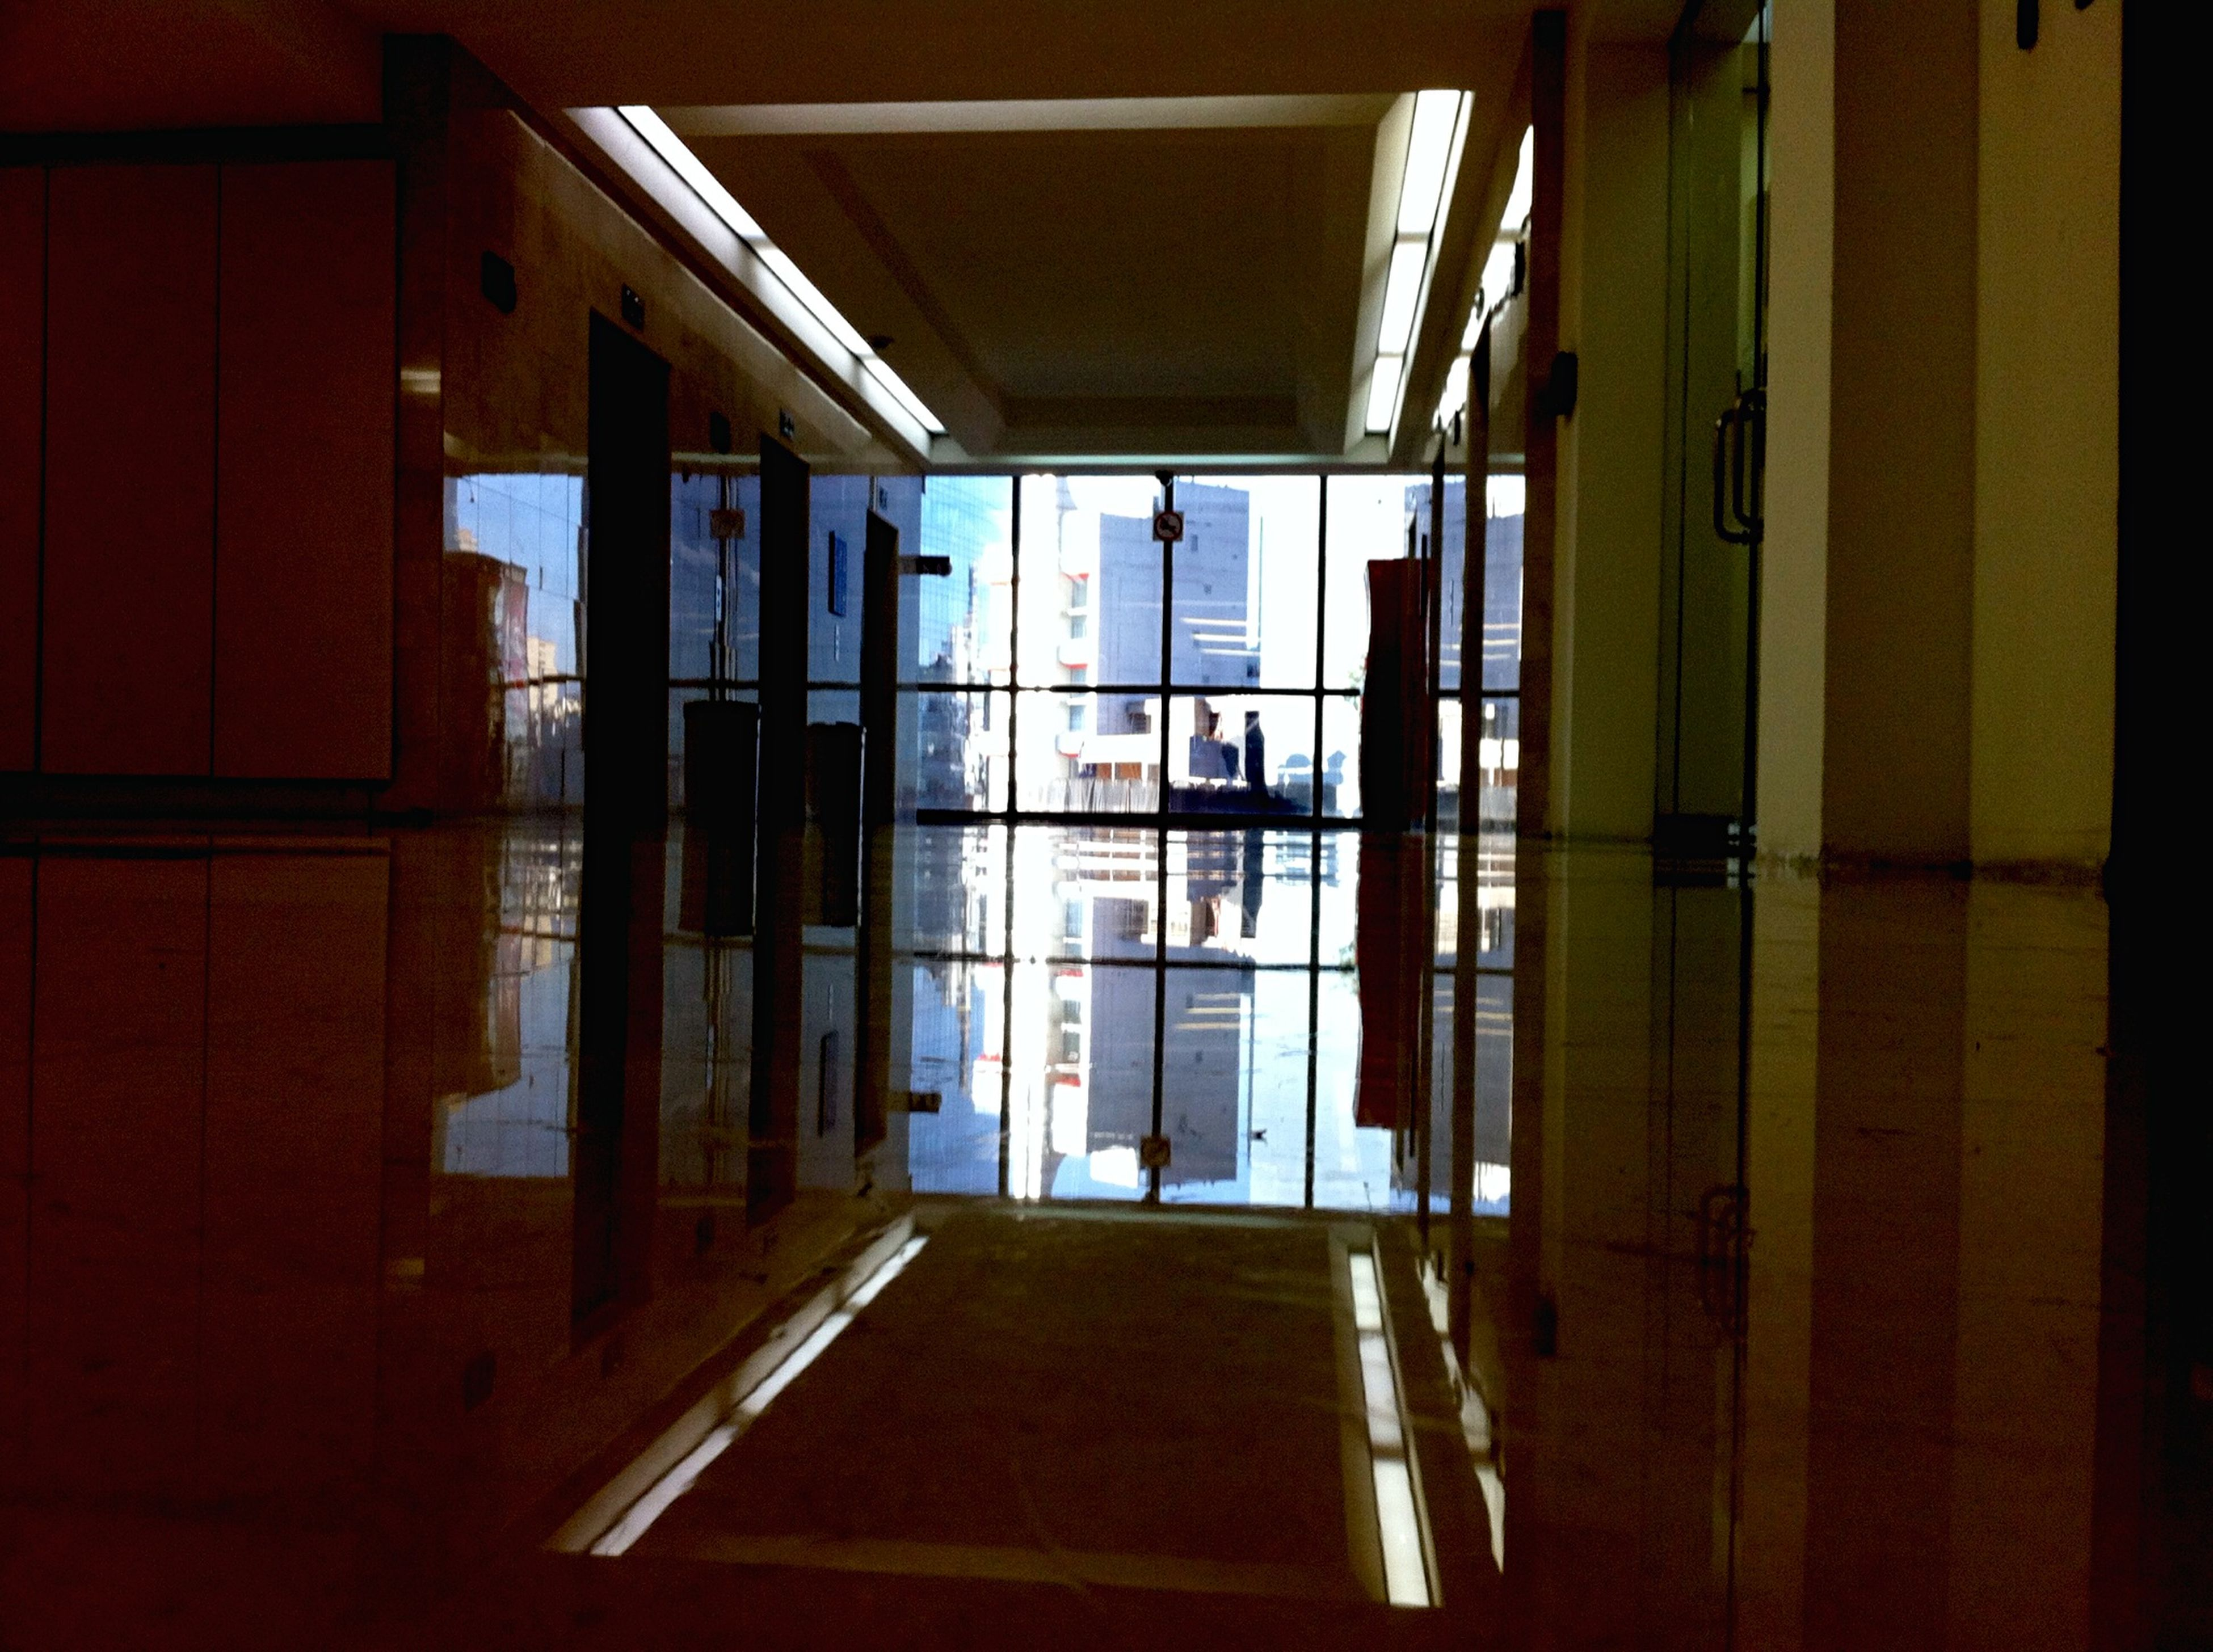 indoors, architecture, window, built structure, glass - material, reflection, transparent, house, building, building exterior, flooring, door, shadow, ceiling, sunlight, day, empty, no people, corridor, residential structure